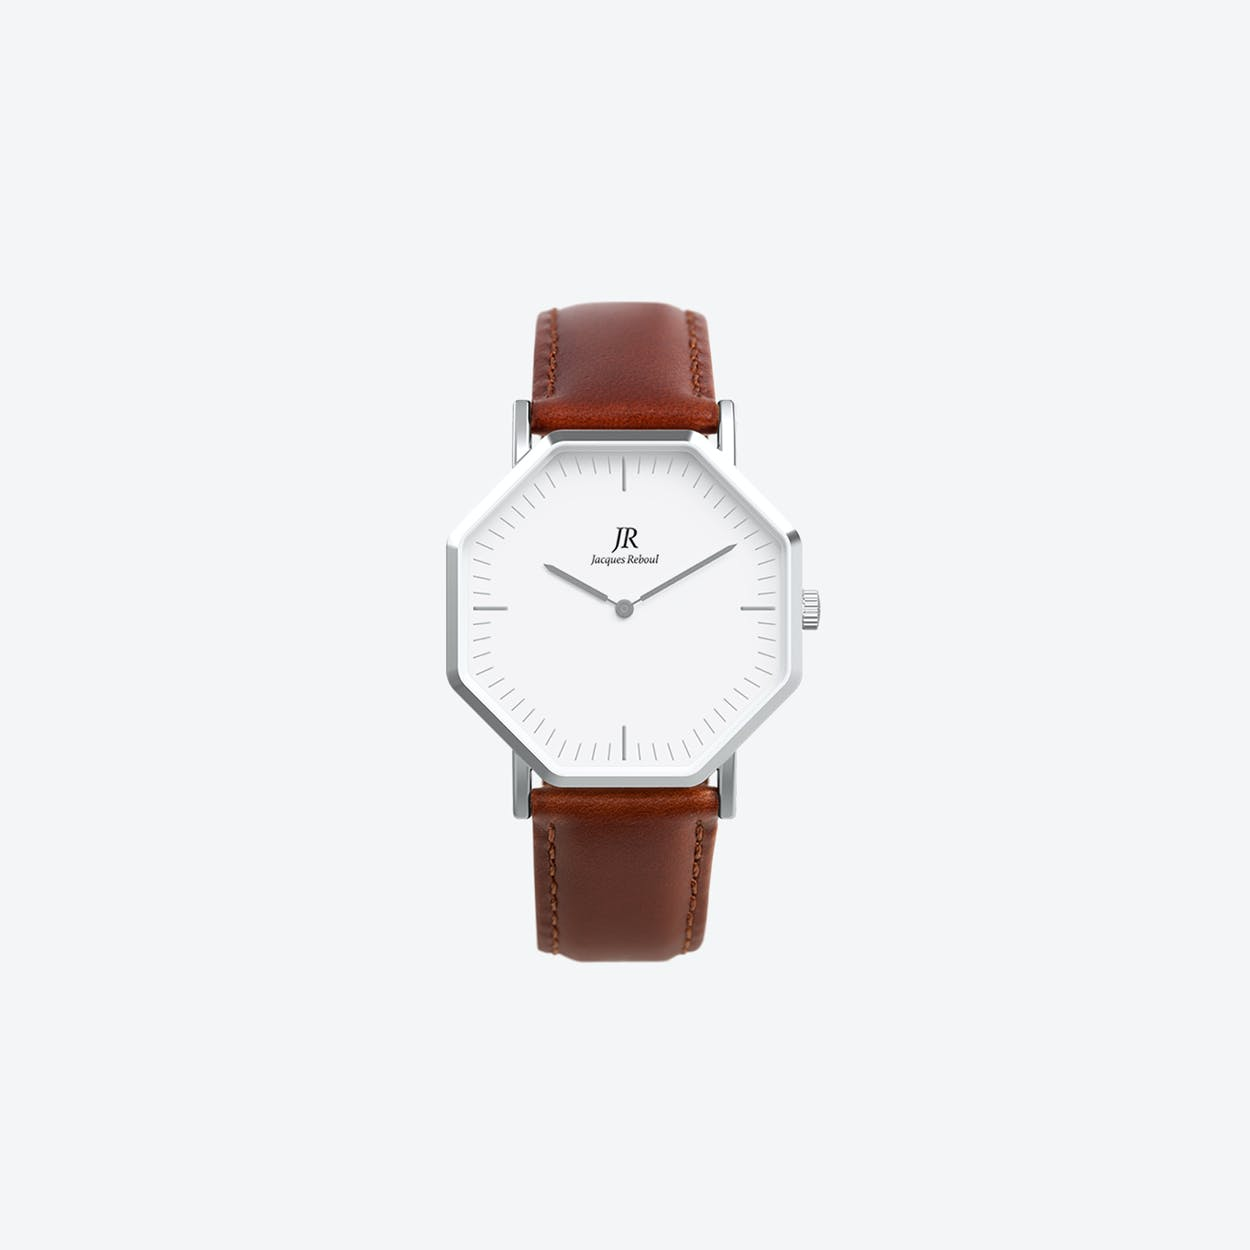 Premier Classic Silver Hexagonal Watch with Brown Leather Strap 36mm